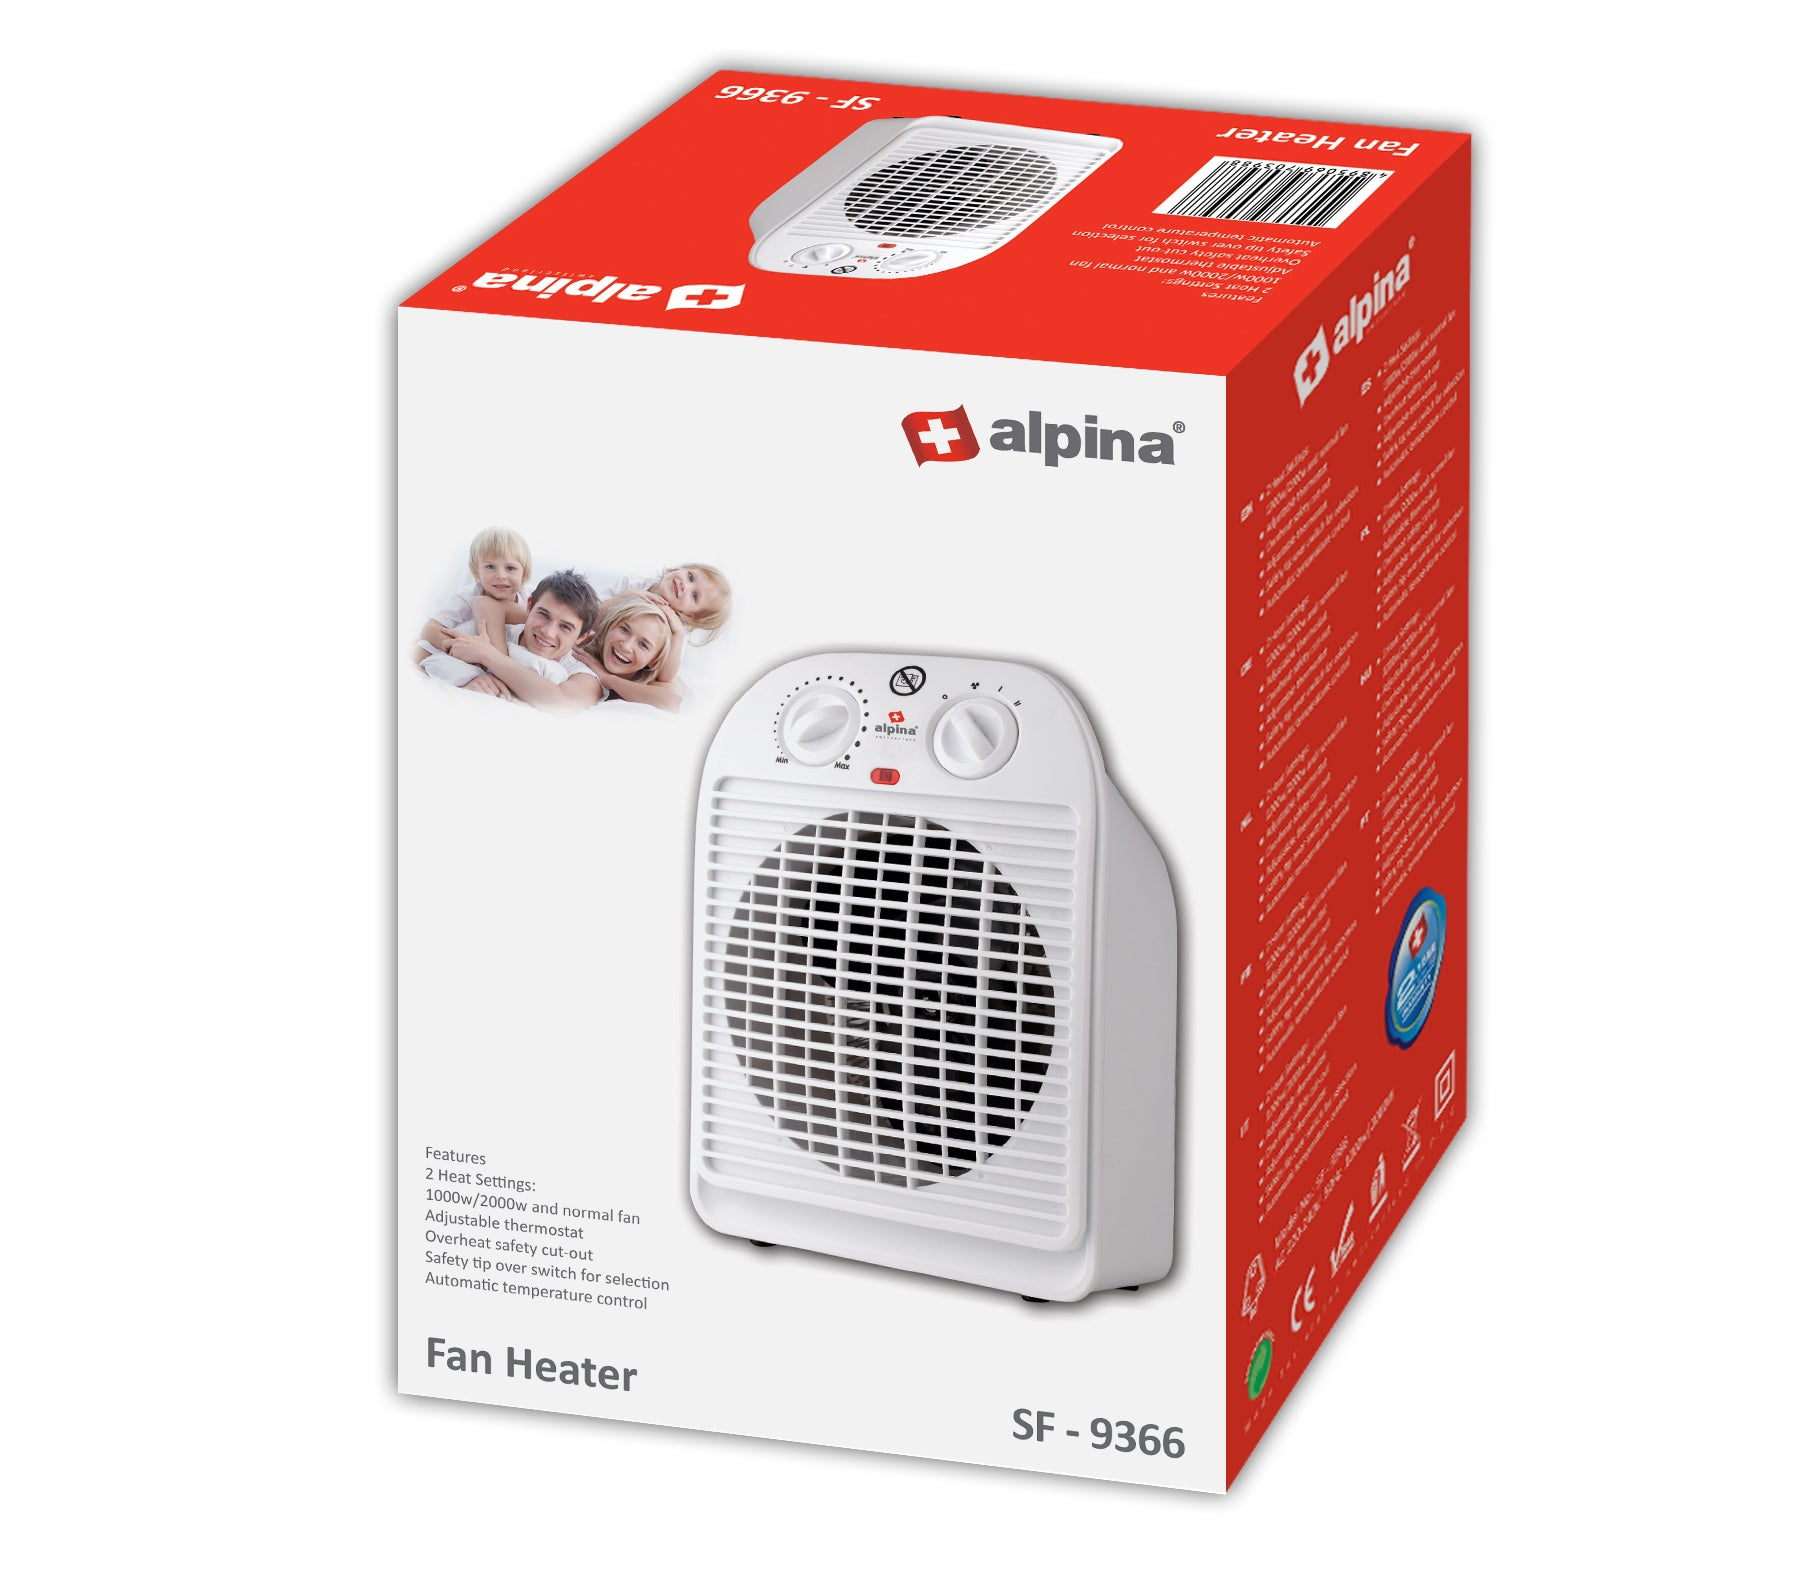 Alpina Fan Heater SF-9366